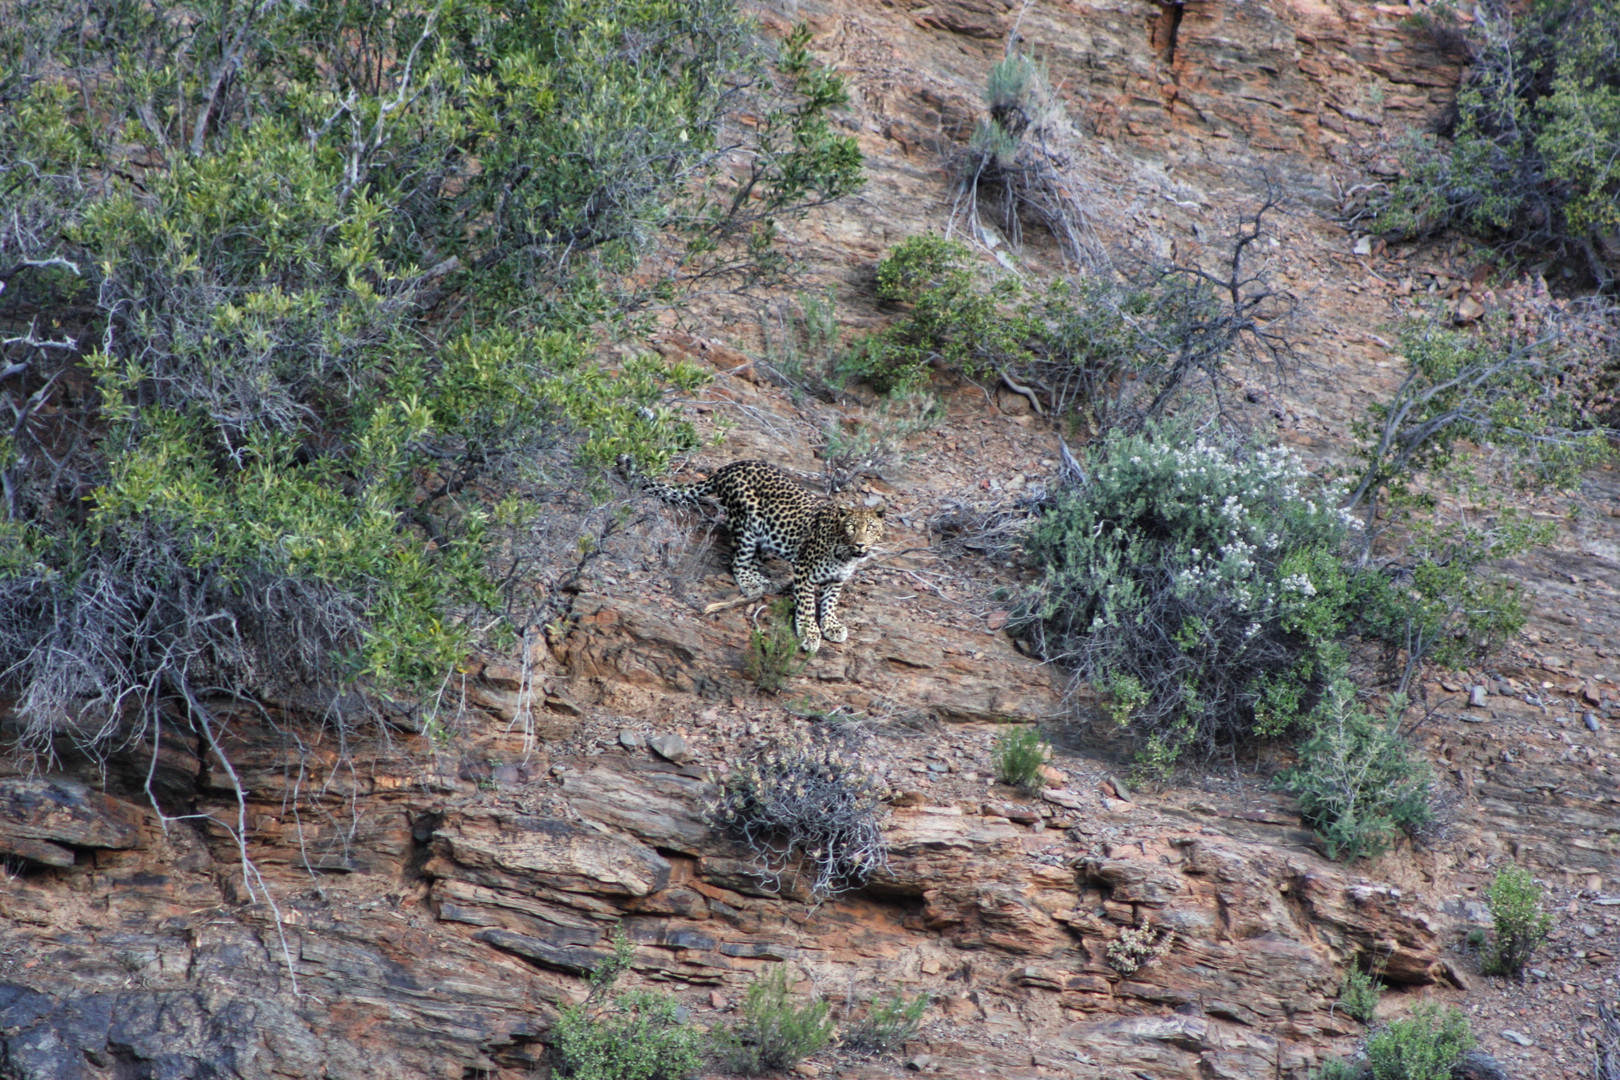 First picture taken of the Leopard during daylight